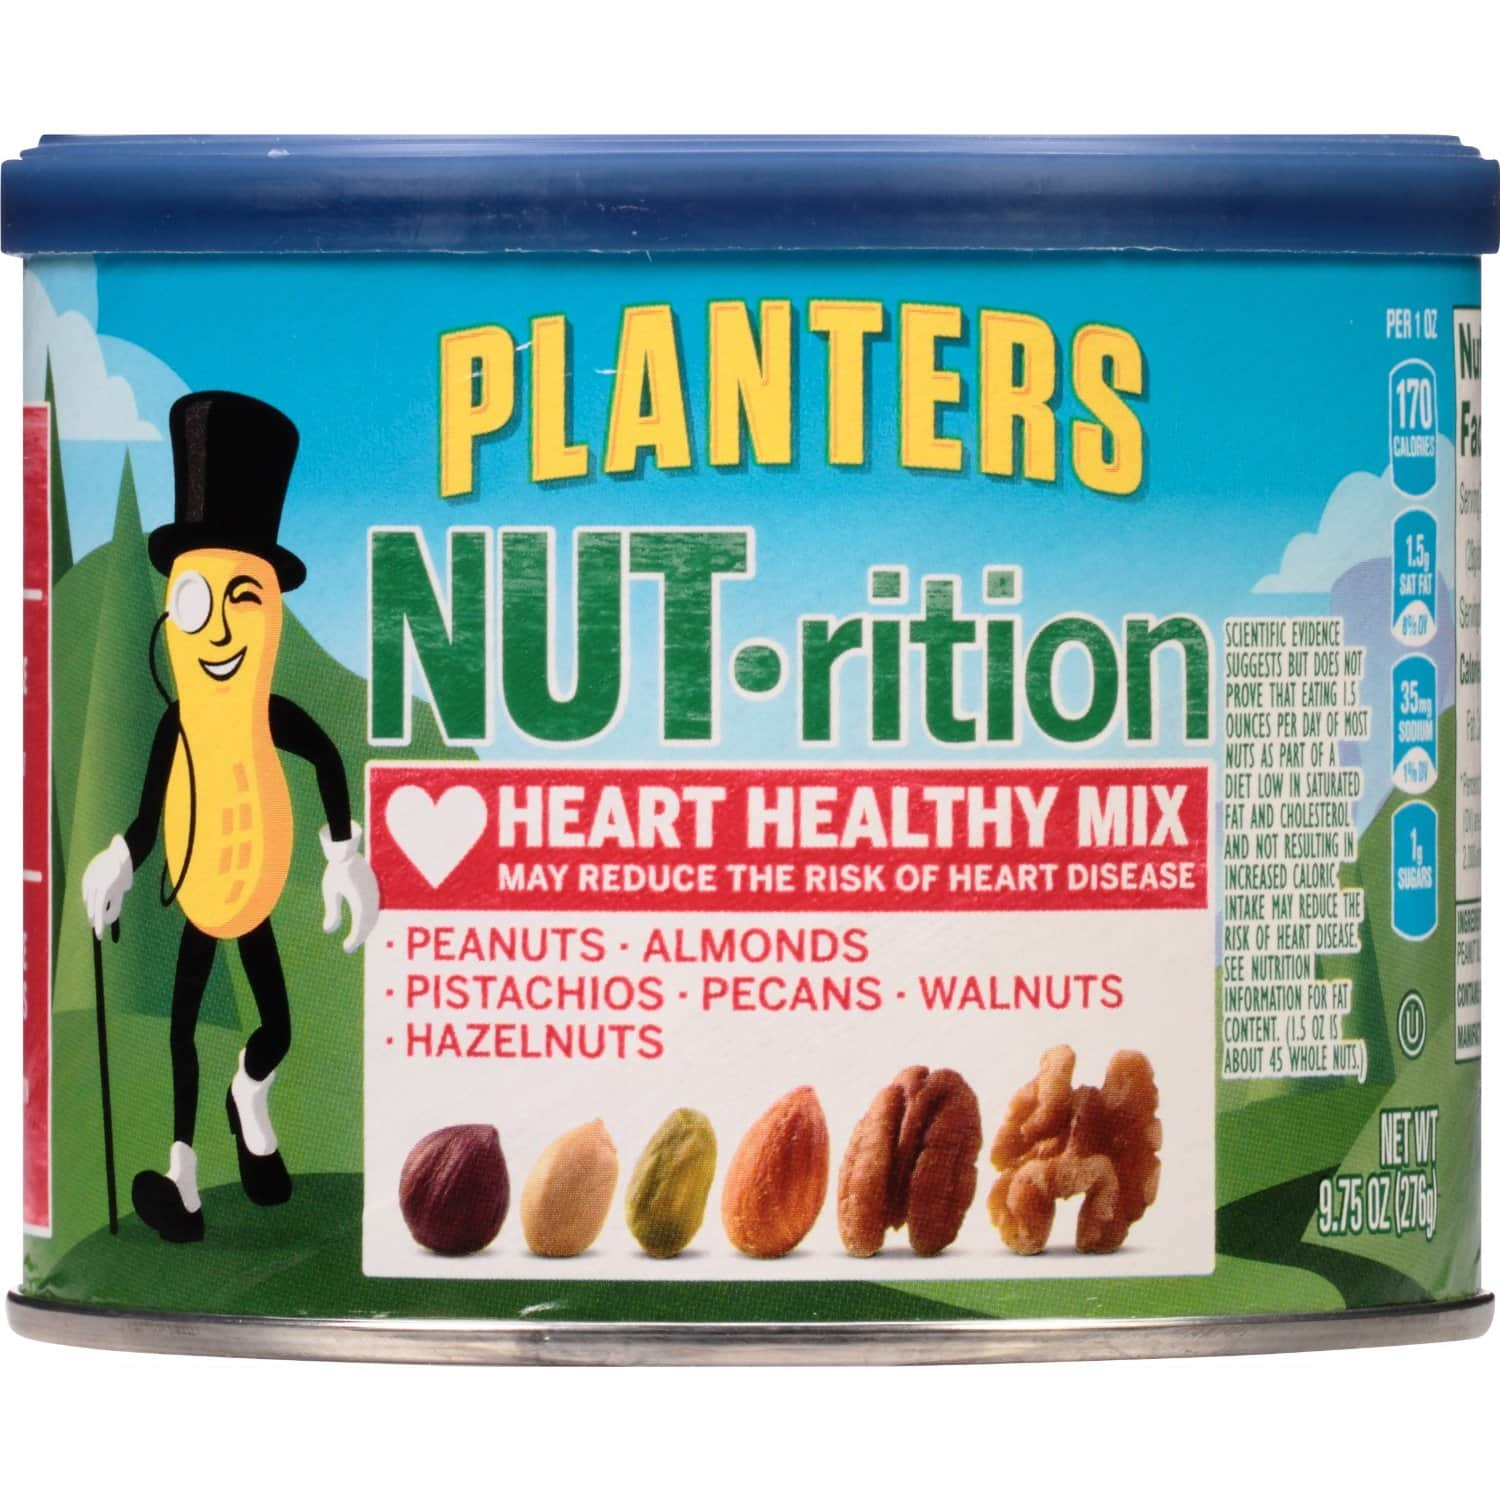 Planters NUT-rition Heart Healthy Mix, (3x 9.75-oz. Cans): $9 + FS @ Amazon [Prime s&s]